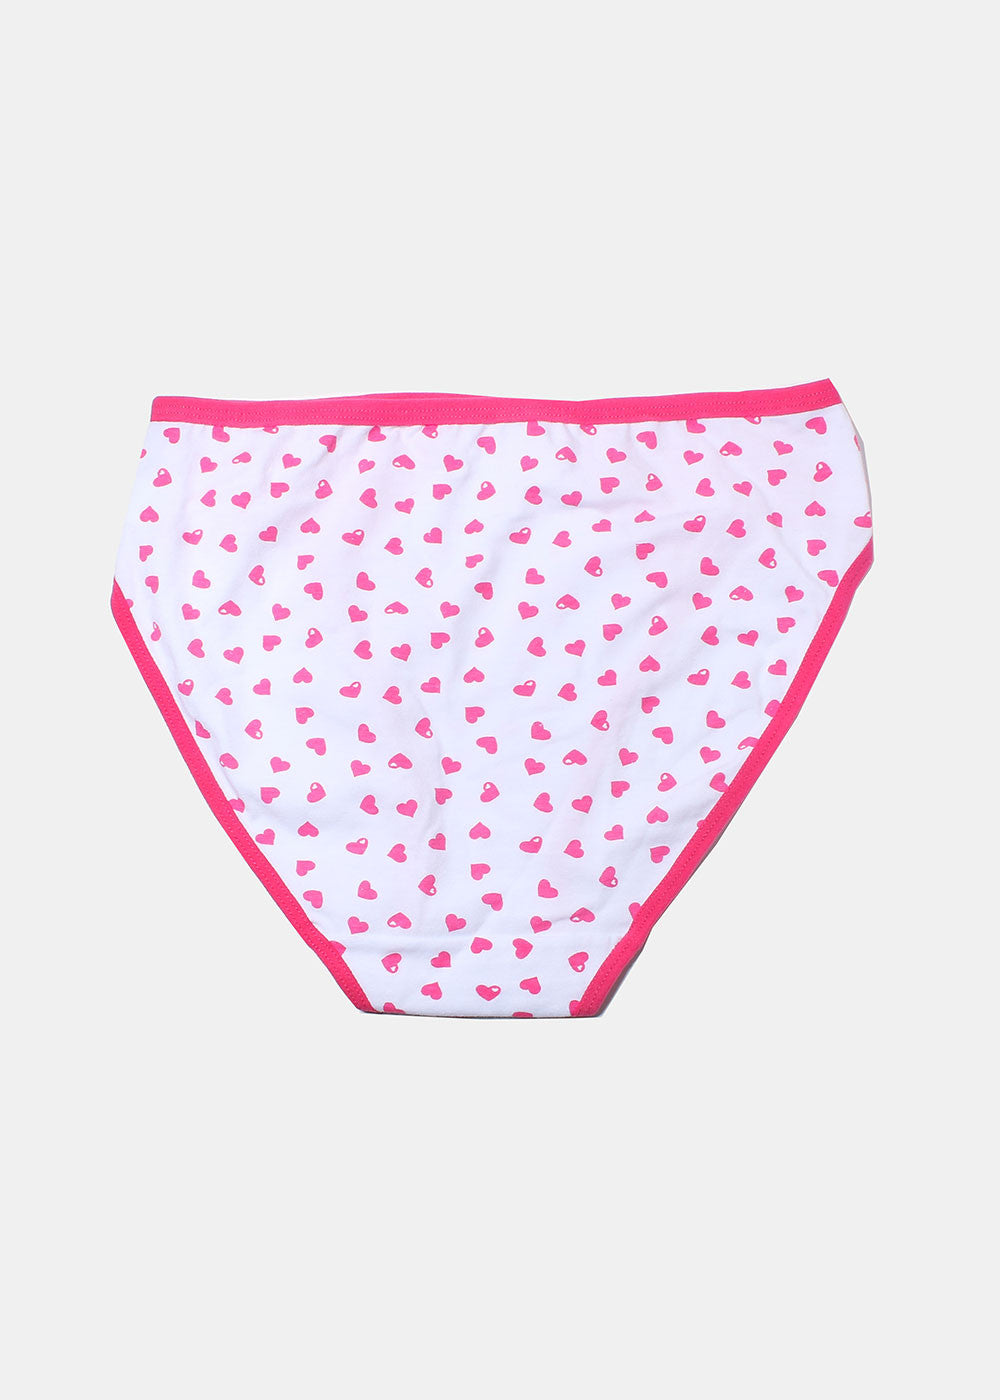 Lace & Heart Print Brief Panty- White